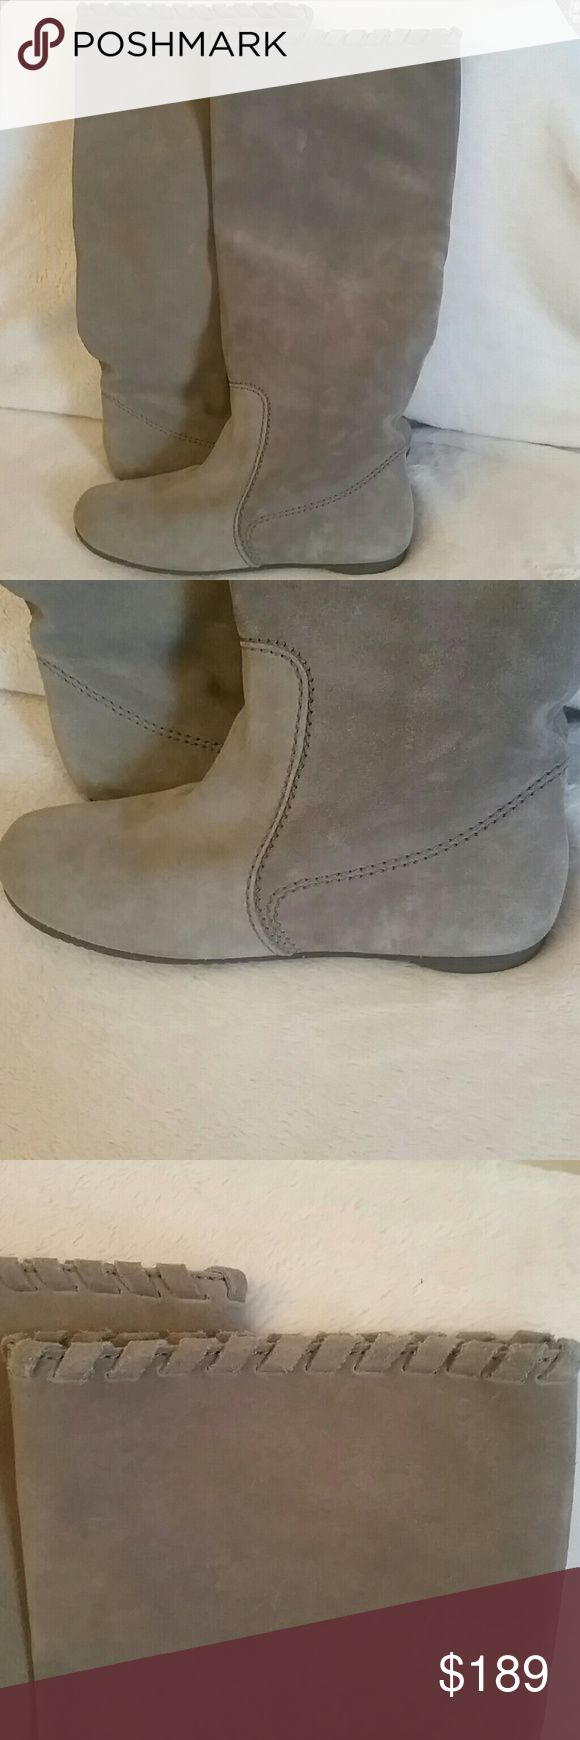 Pedro garcia taupe/ gray boots suede Pedro garc?a suede pull on boots bought in Miami fountainbleau Ida and Harry Boutique Pedro garc?a Shoes Over the Knee Boots